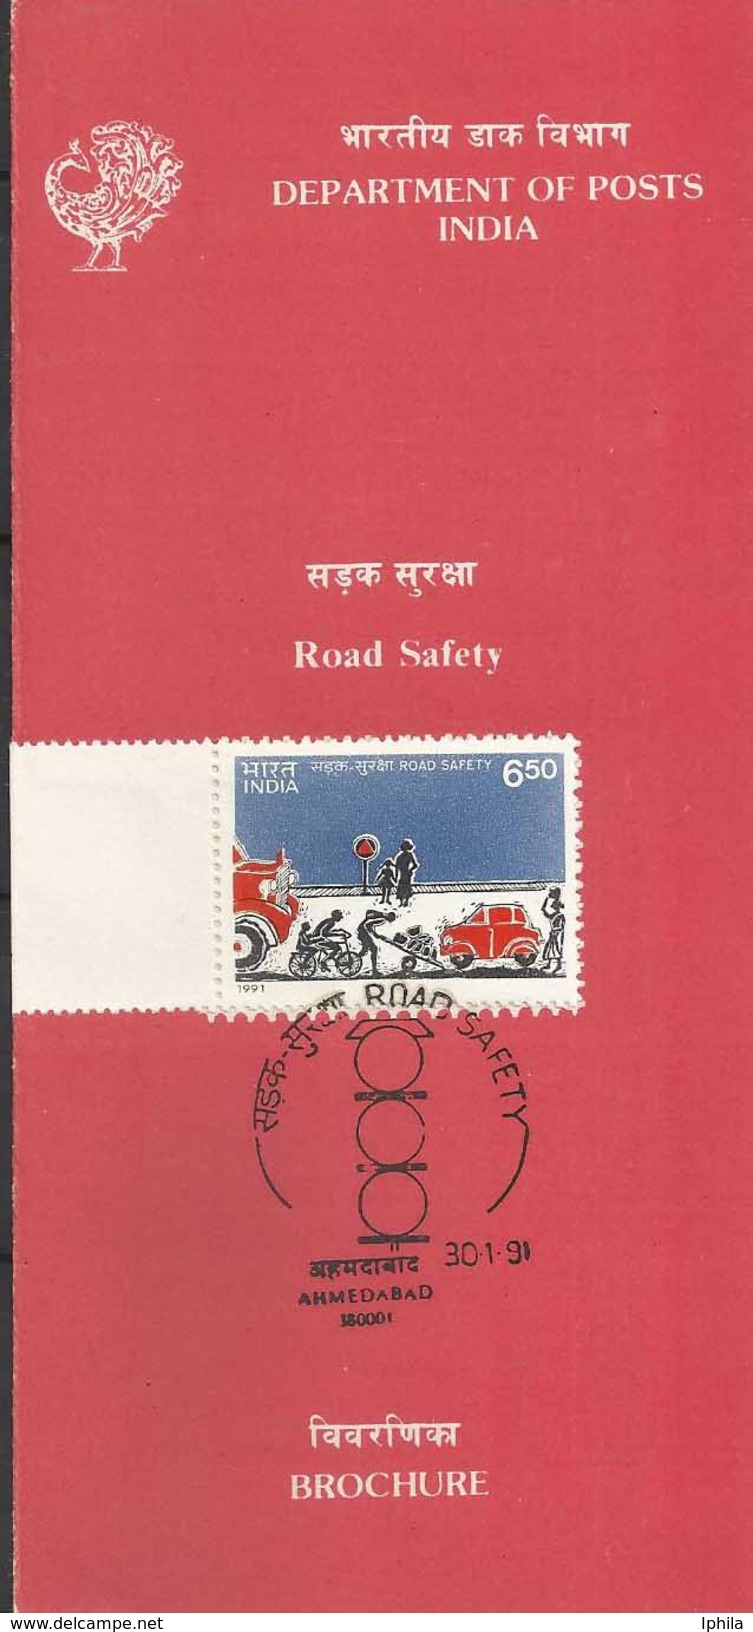 Road Safety Cars Cycle Truck Transport Accidents Stamped Folder 1991 Health Indian Indien Inde Indes - Accidents & Road Safety